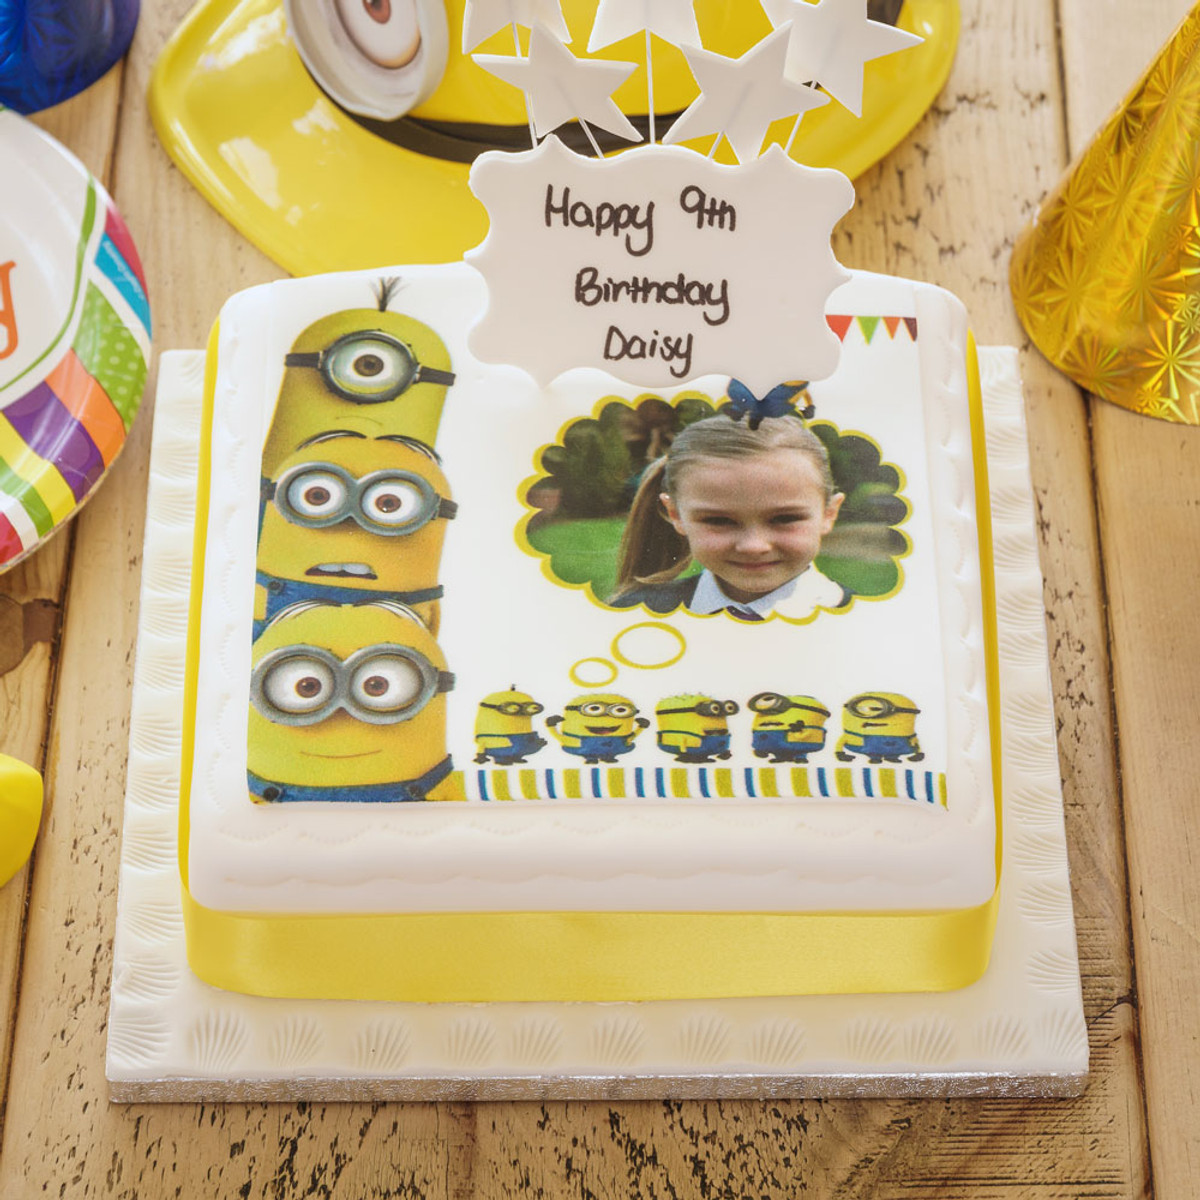 Magnificent Minions Photo Cake Birthday Cakes The Brilliant Bakers Funny Birthday Cards Online Barepcheapnameinfo